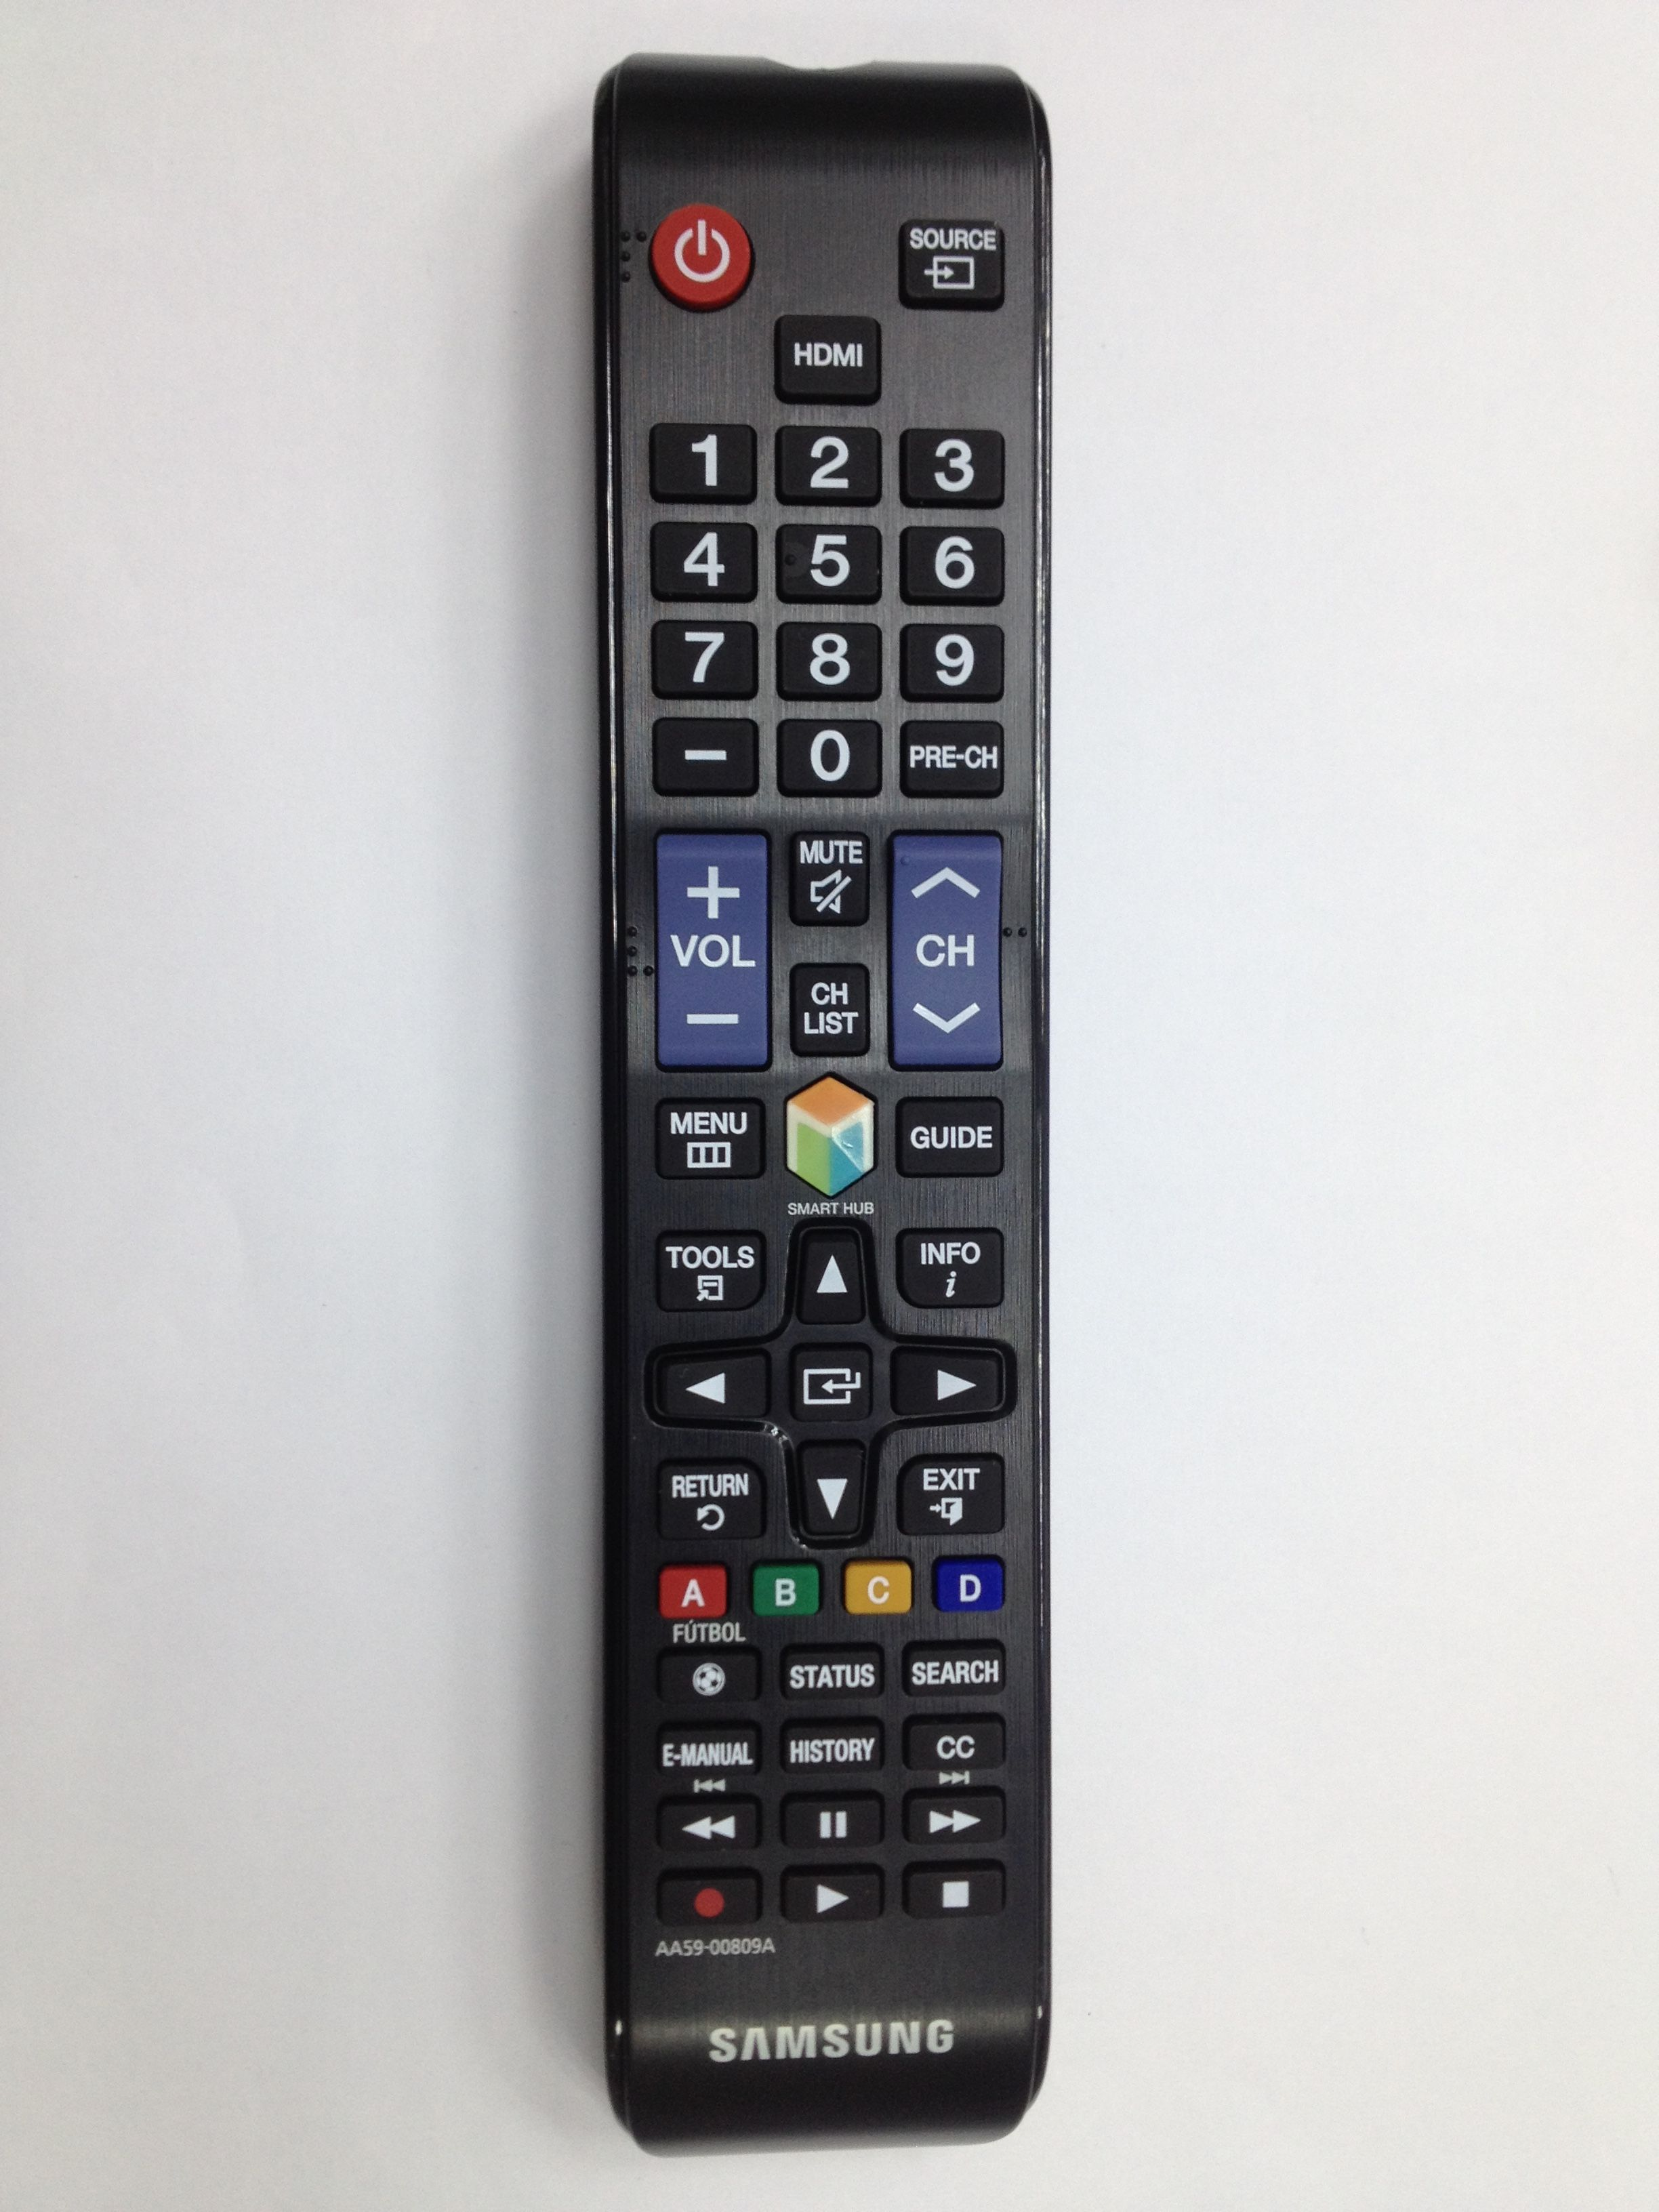 AA5900809A SAMSUNG Original remote control . We Offer